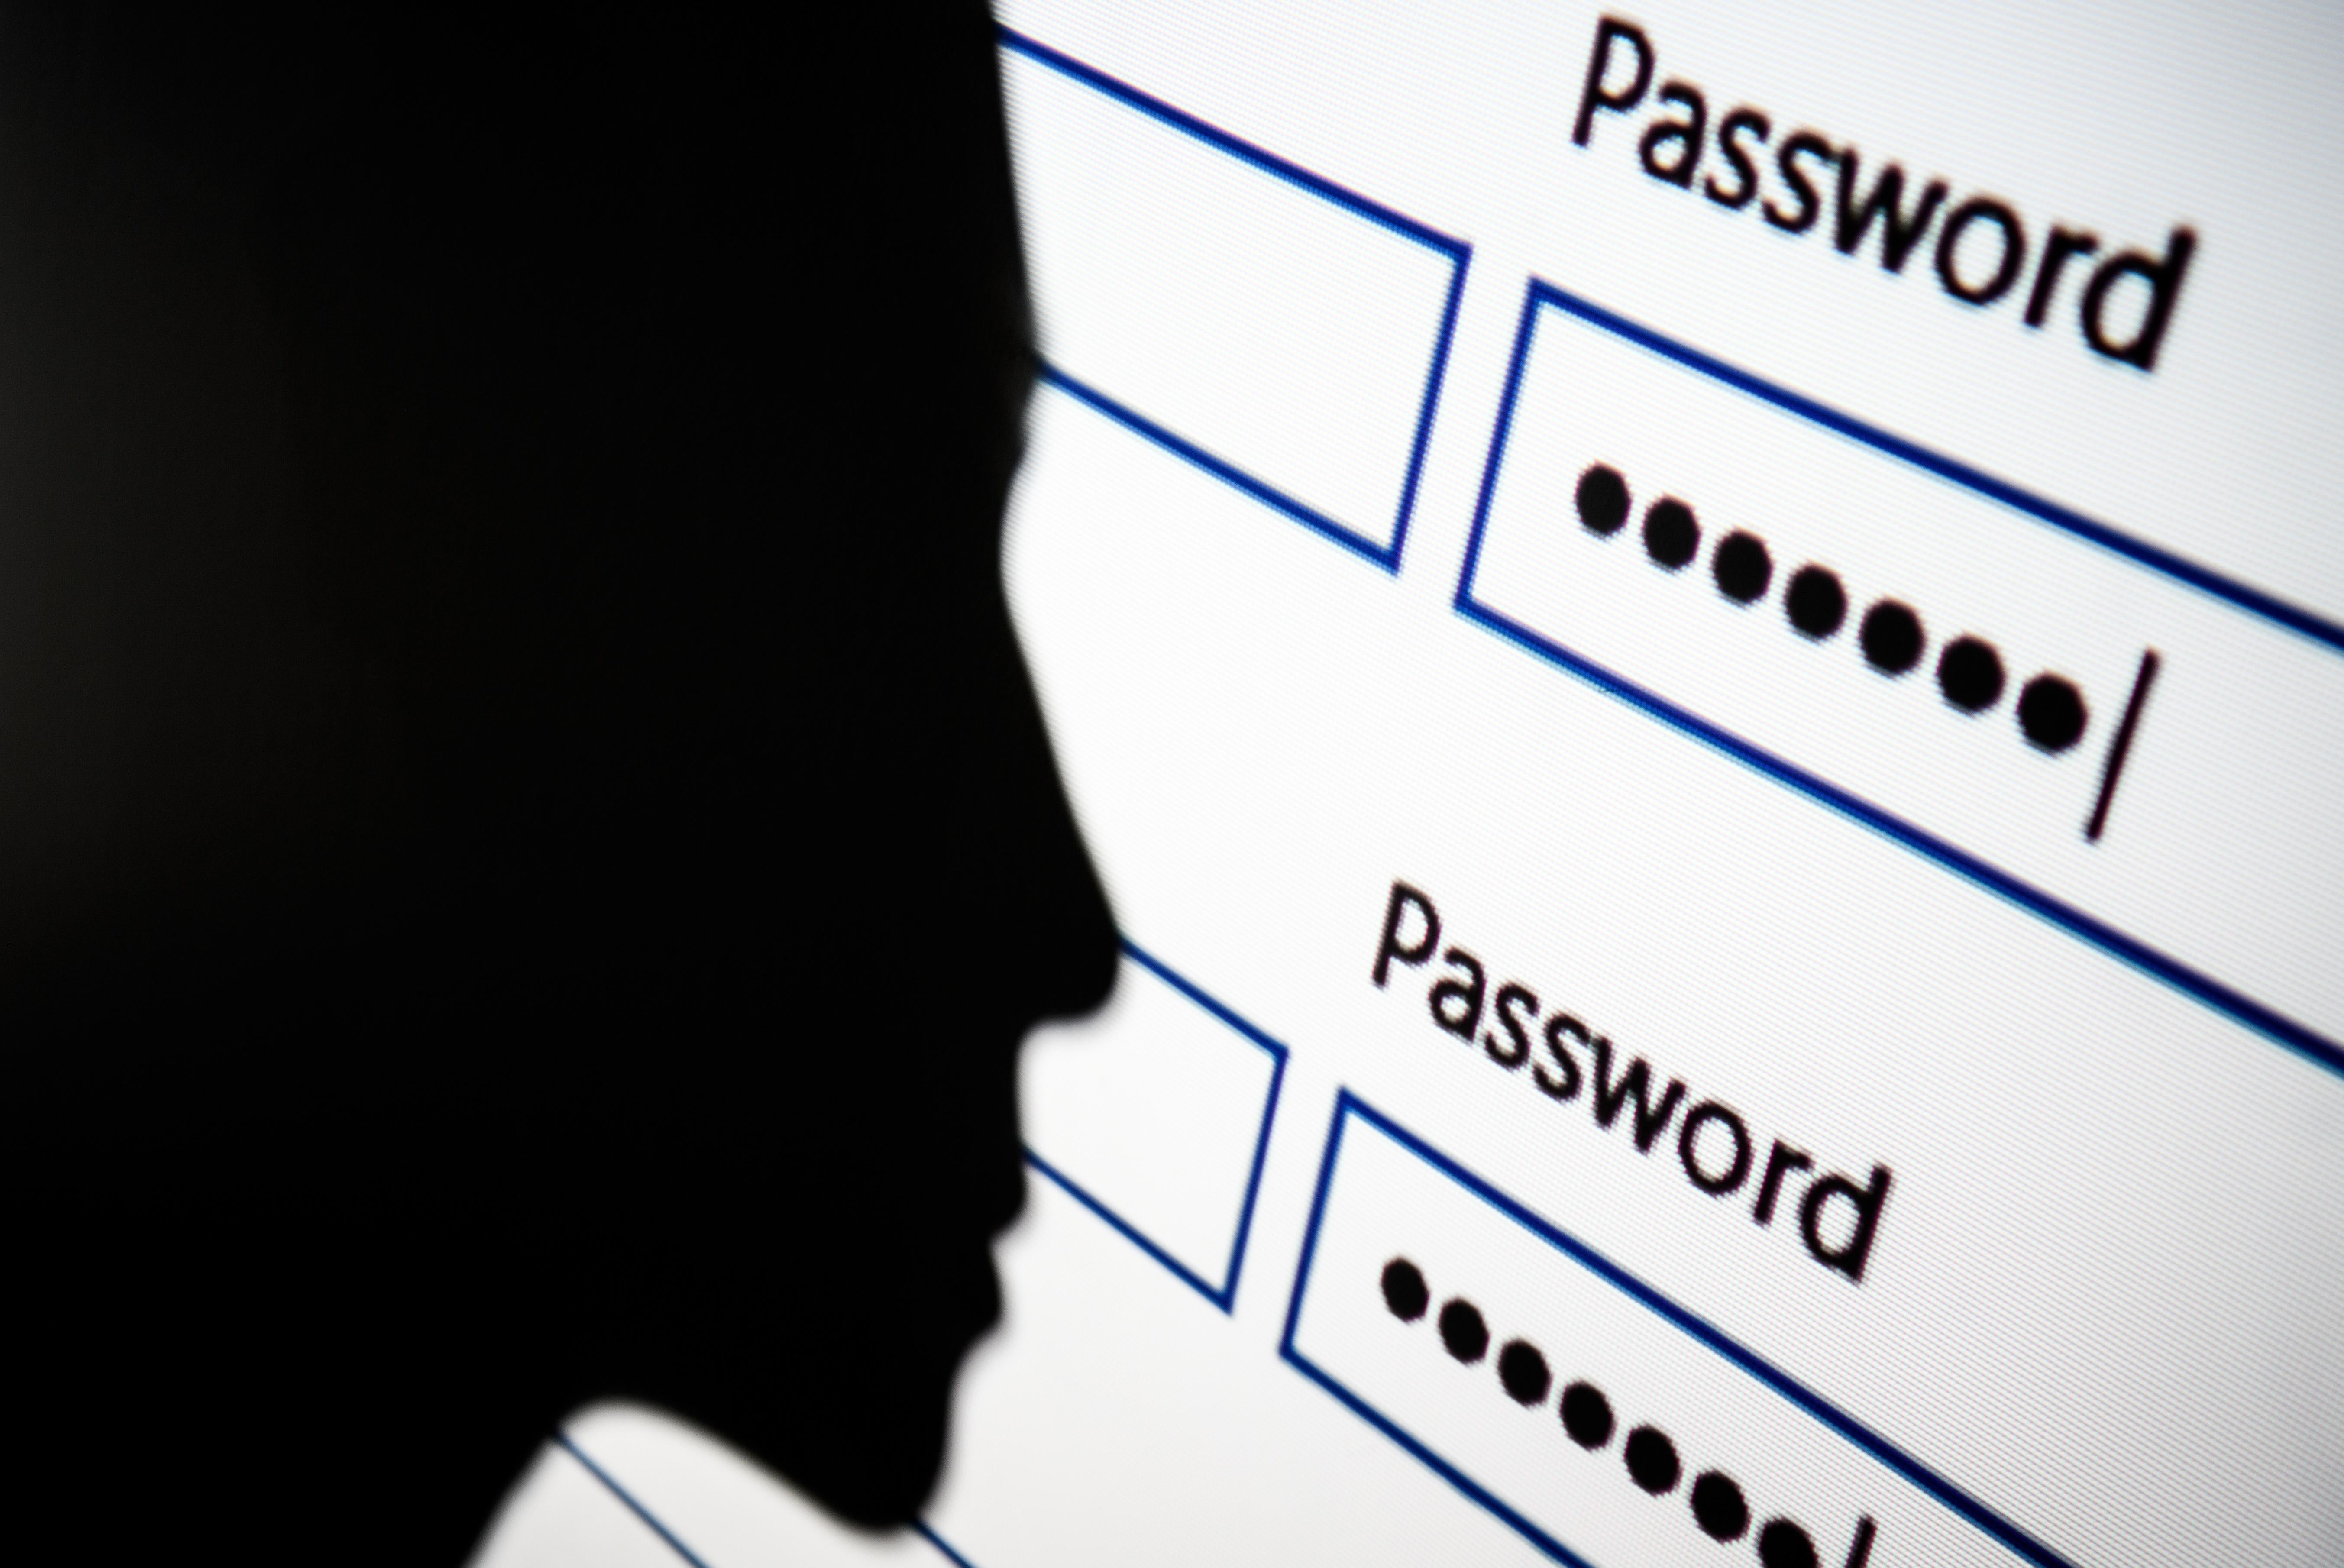 A woman is silhouetted against a projection of a password login page.